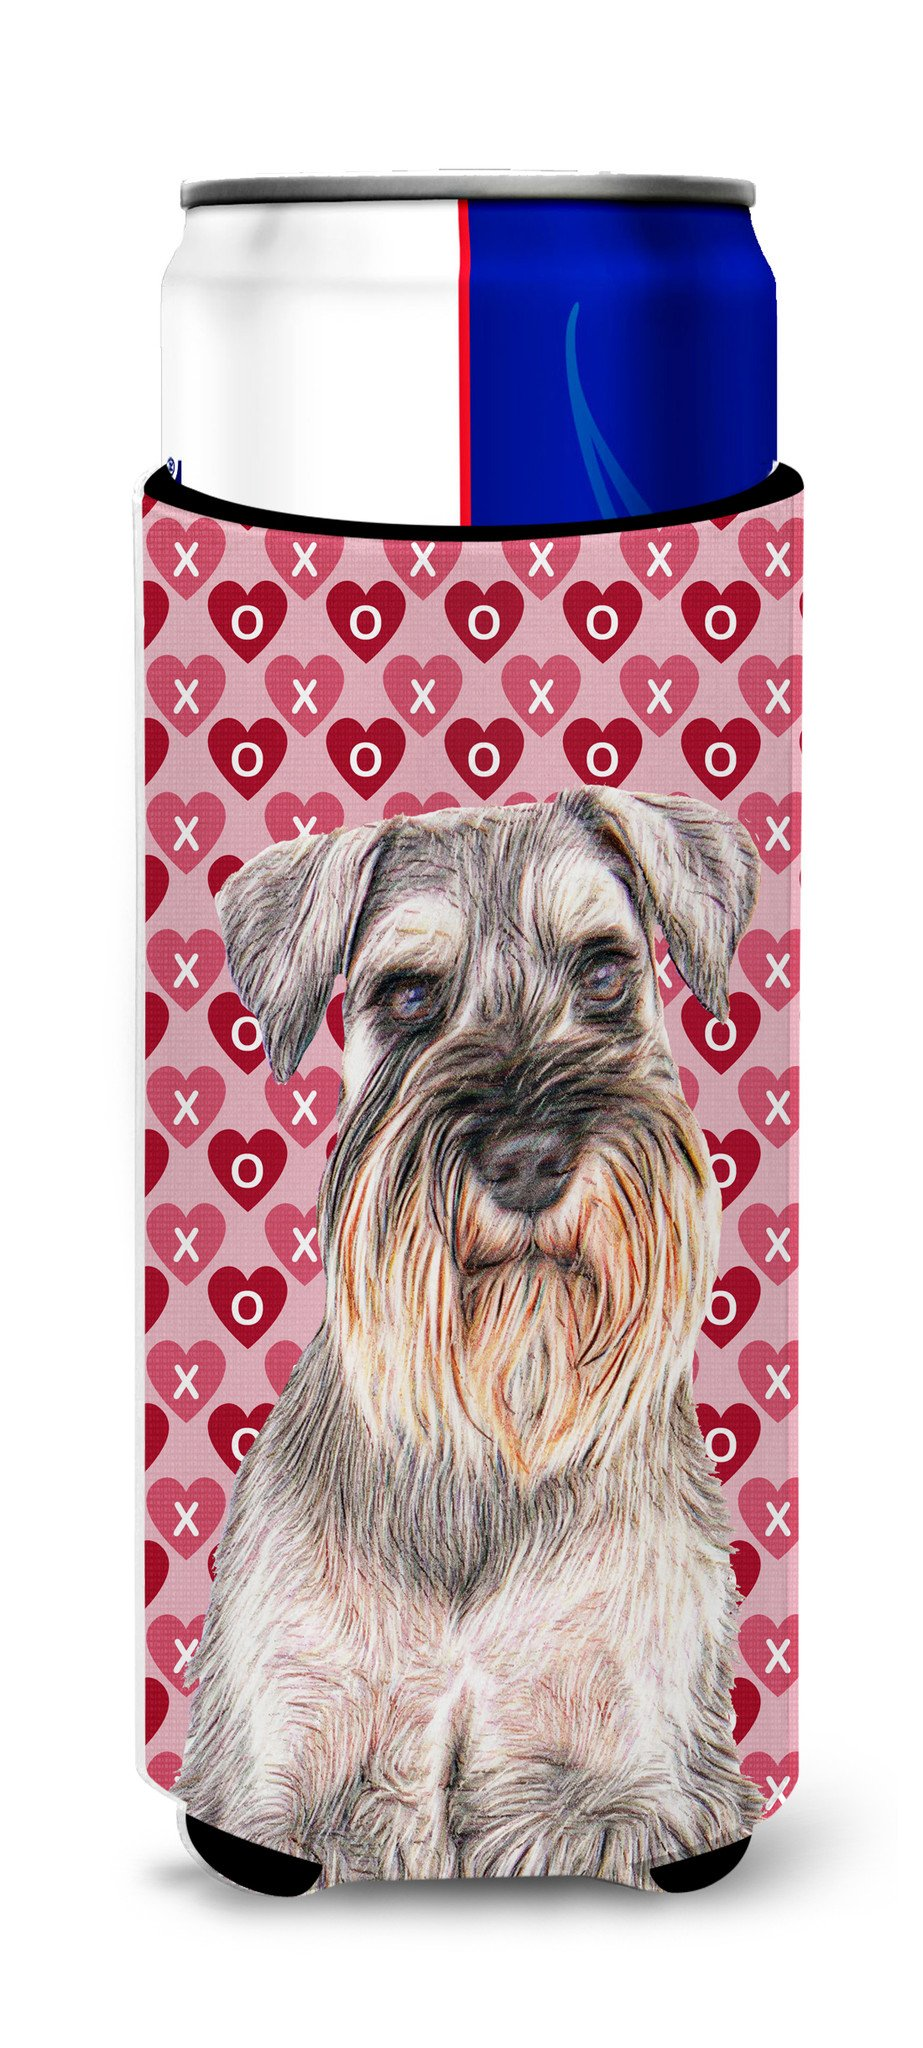 Hearts Love and Valentine's Day Schnauzer Ultra Beverage Insulators for slim cans KJ1193MUK by Caroline's Treasures